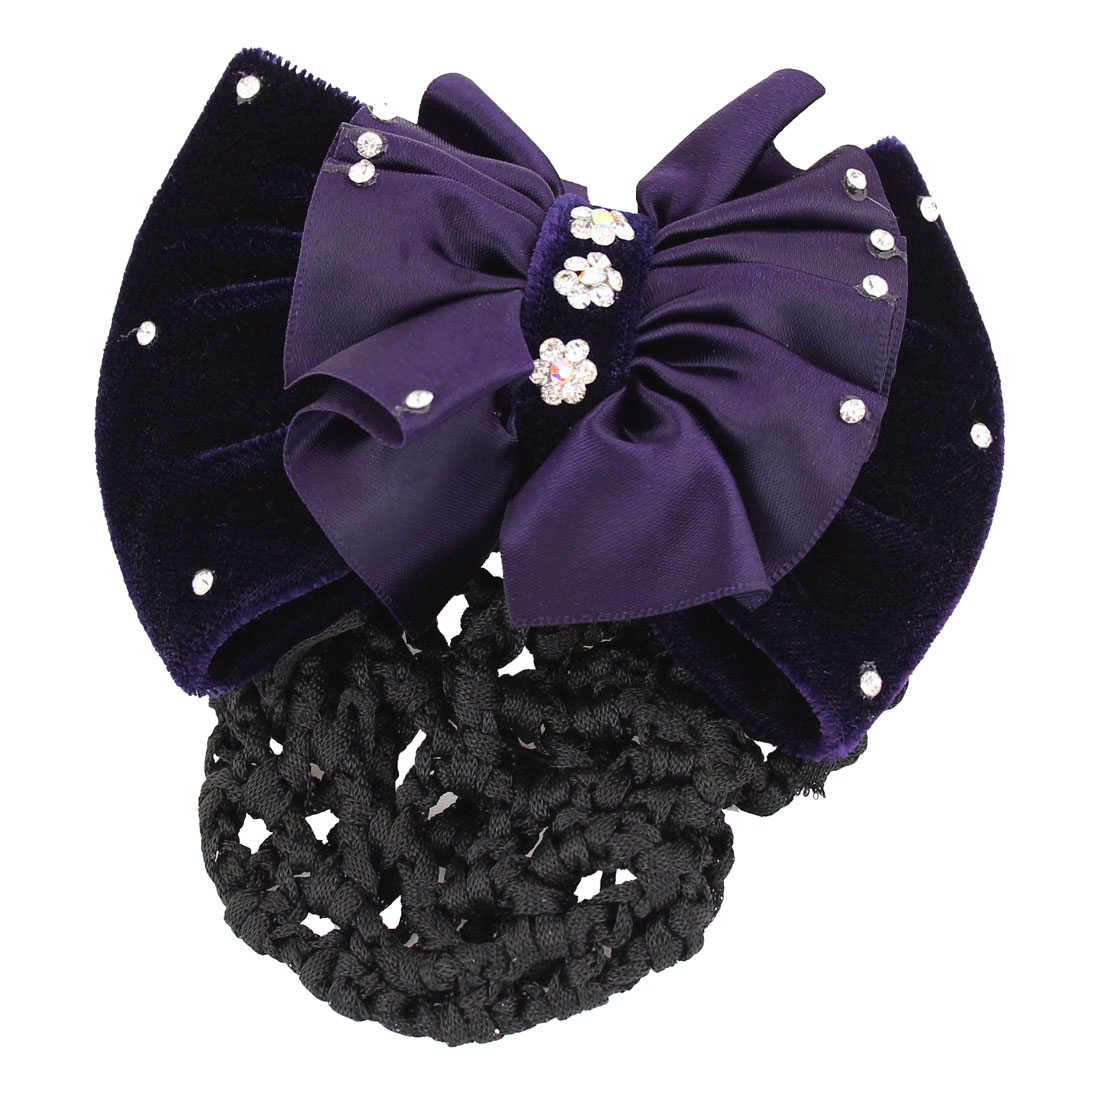 Dark Purple Polyester Bowknot Barrette Hair Clip w Black Nylon Snood Net